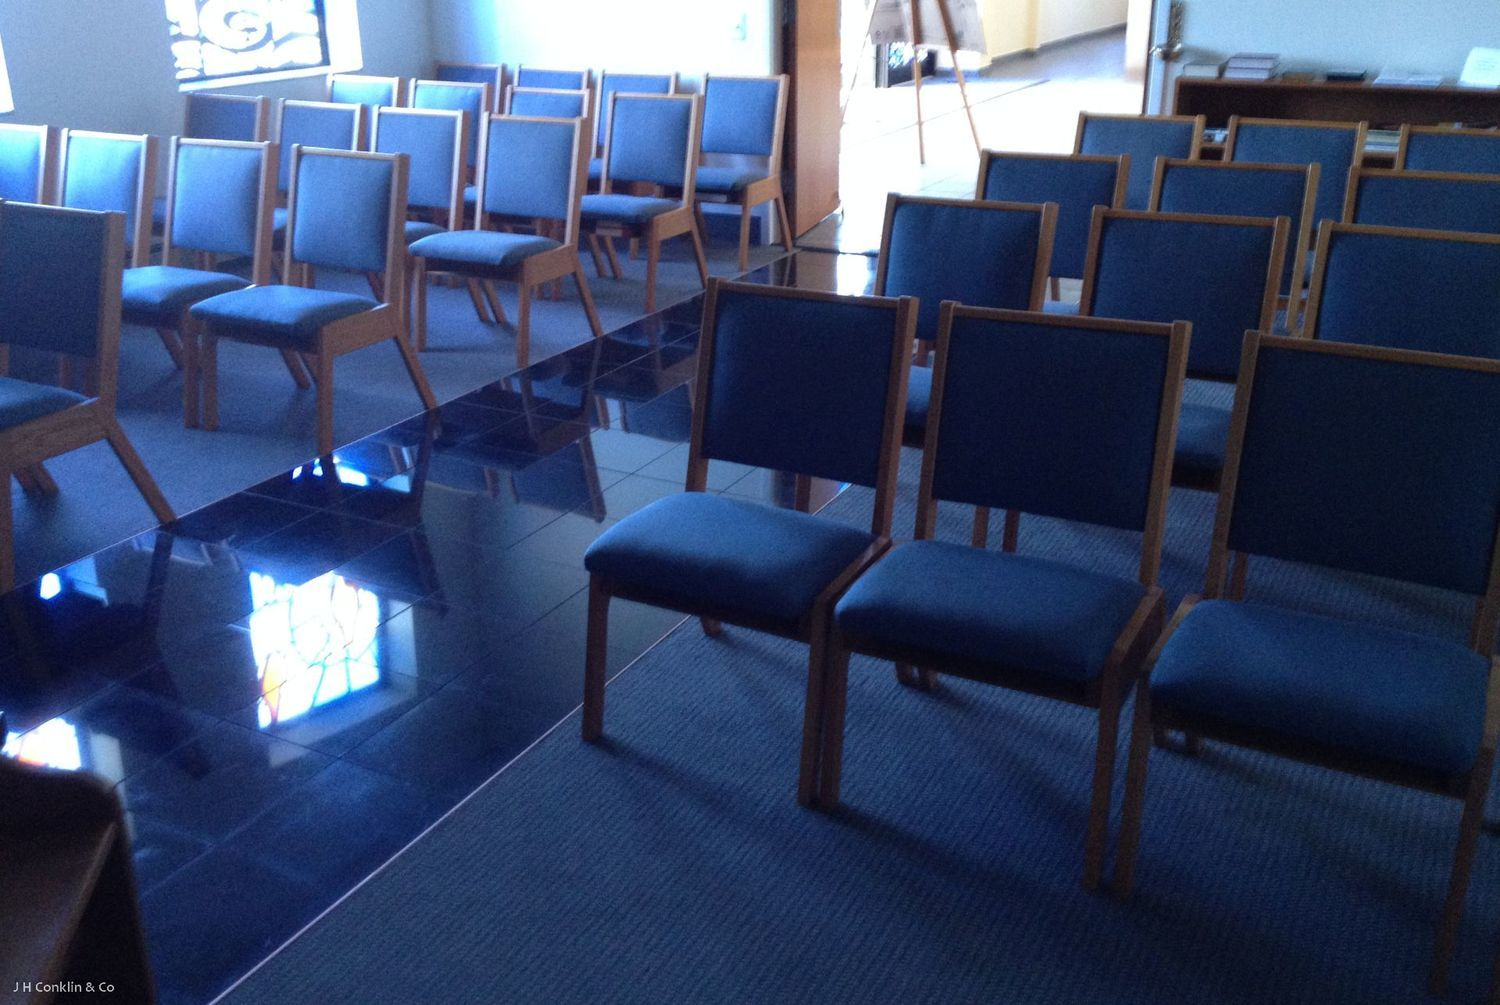 Church Chapel Seating Re-upholstered.  New foam, performance fabric.